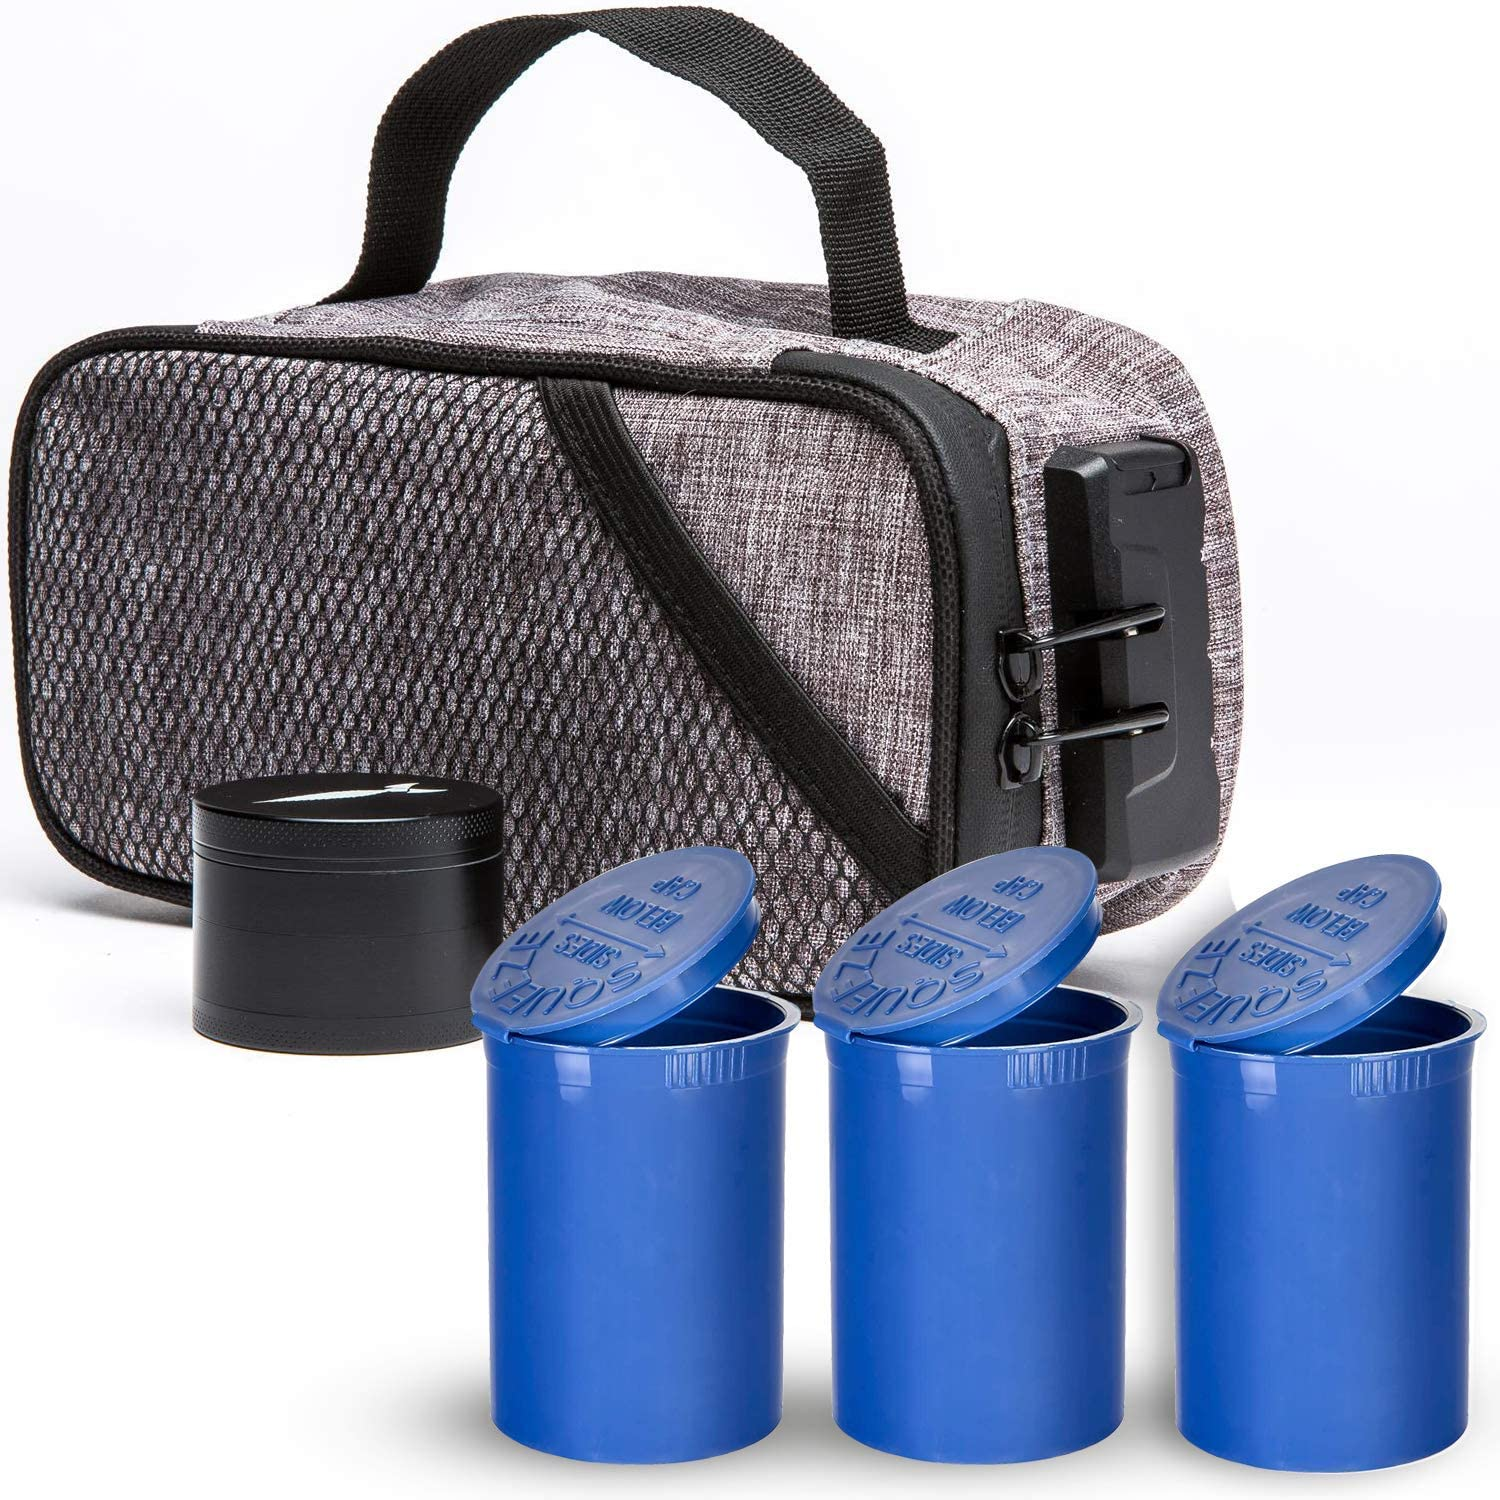 Purchase Smell Proof Max 72% OFF Case with Lock Lining Activated Includes - Carbon